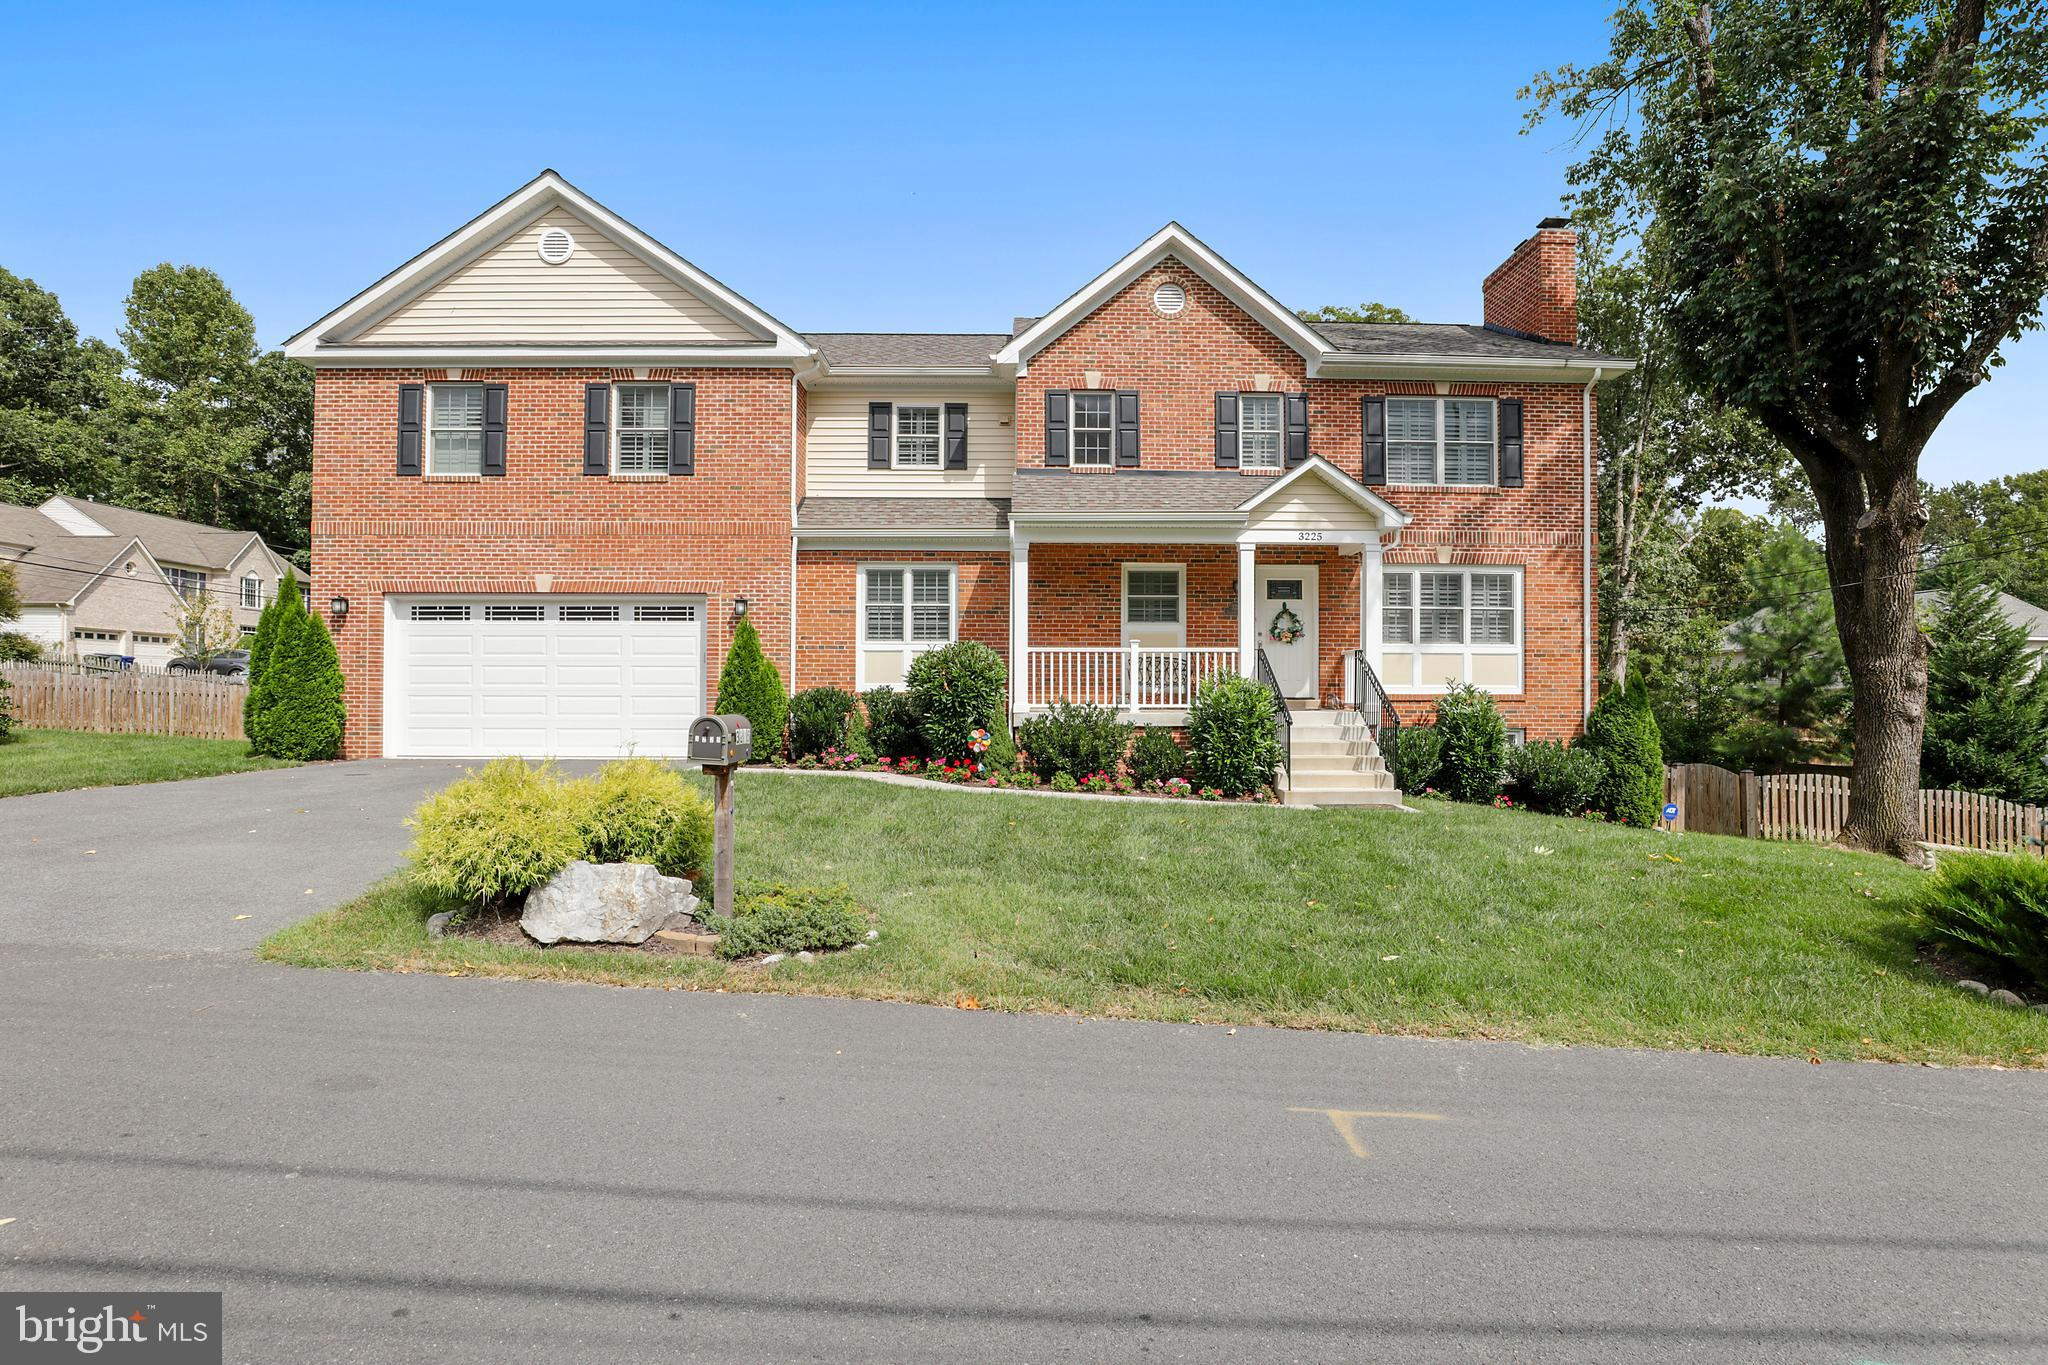 3225 LOCKER STREET, FALLS CHURCH, VA 22042